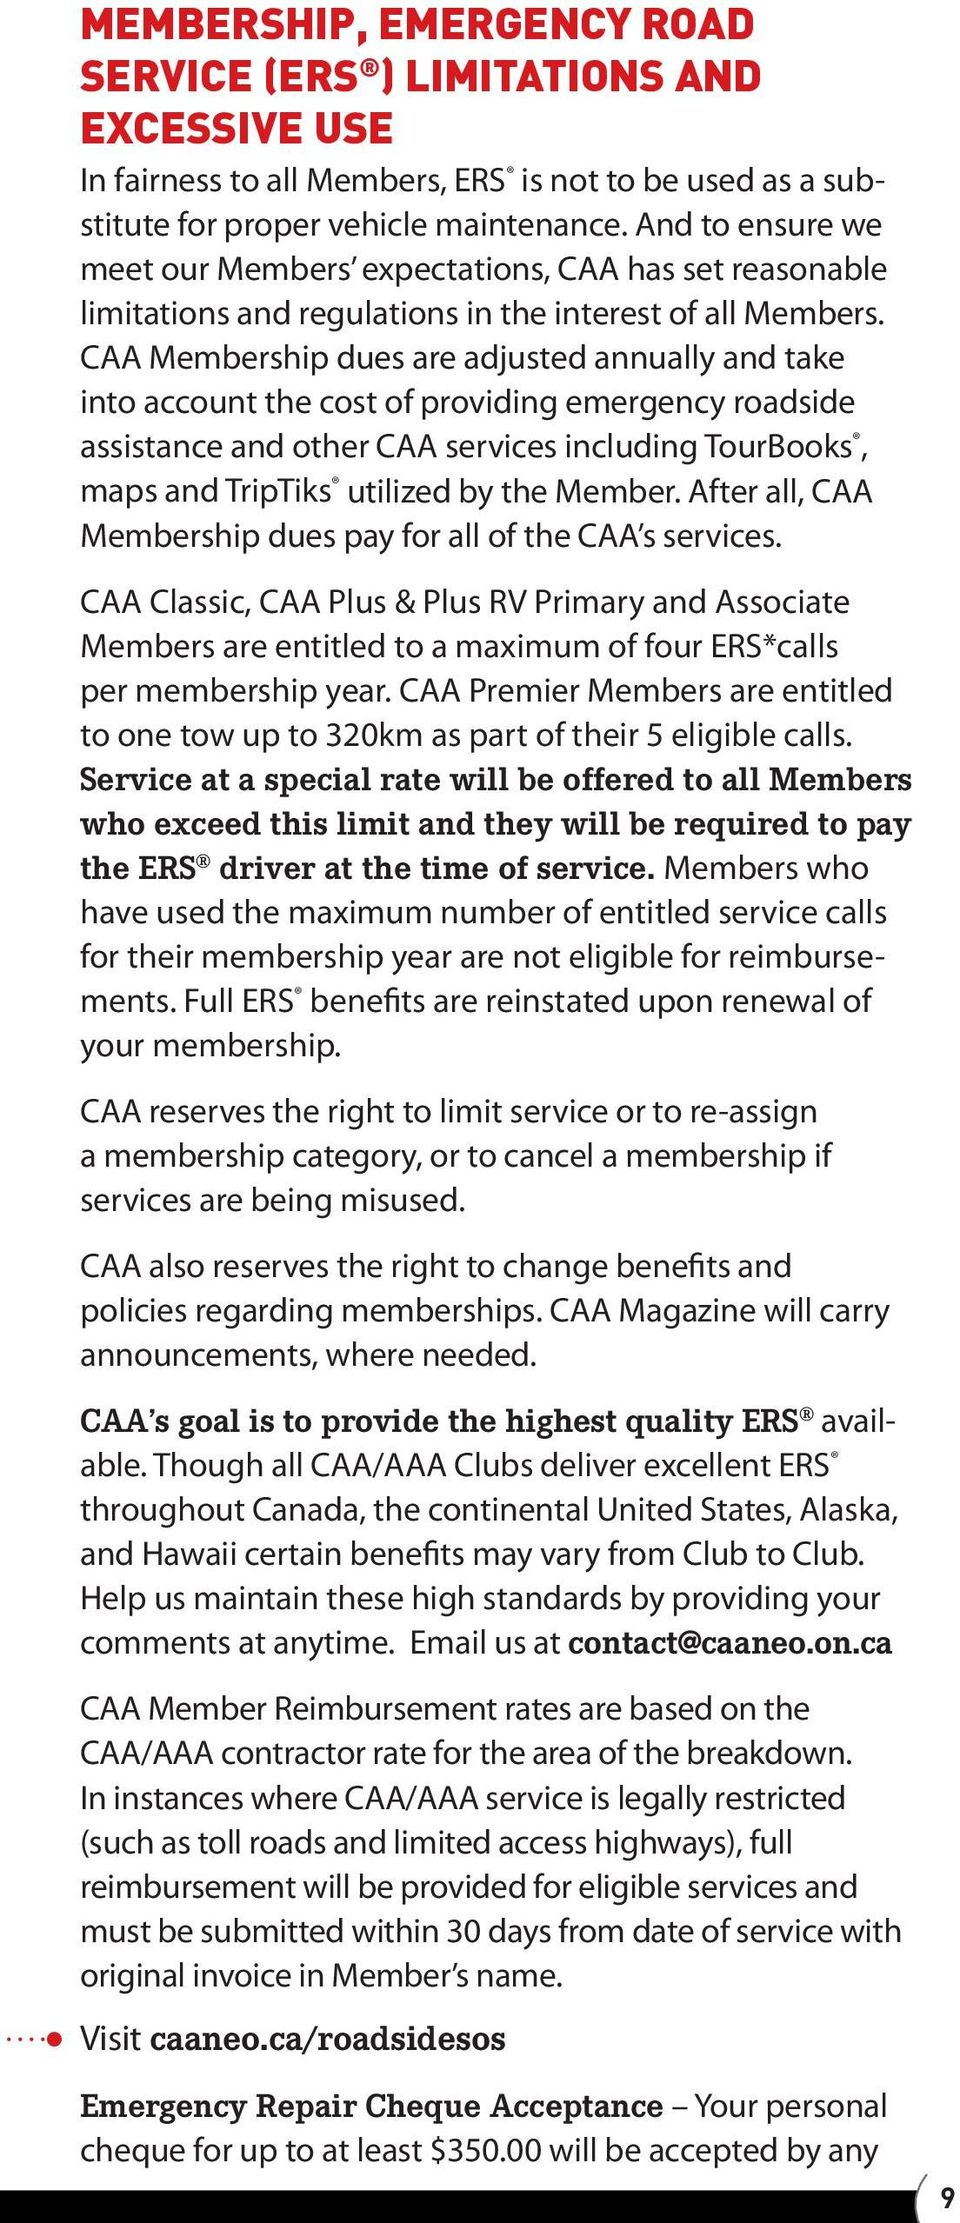 CAA Membership dues are adjusted annually and take into account the cost of providing emergency roadside assistance and other CAA services including TourBooks, maps and TripTiks utilized by the